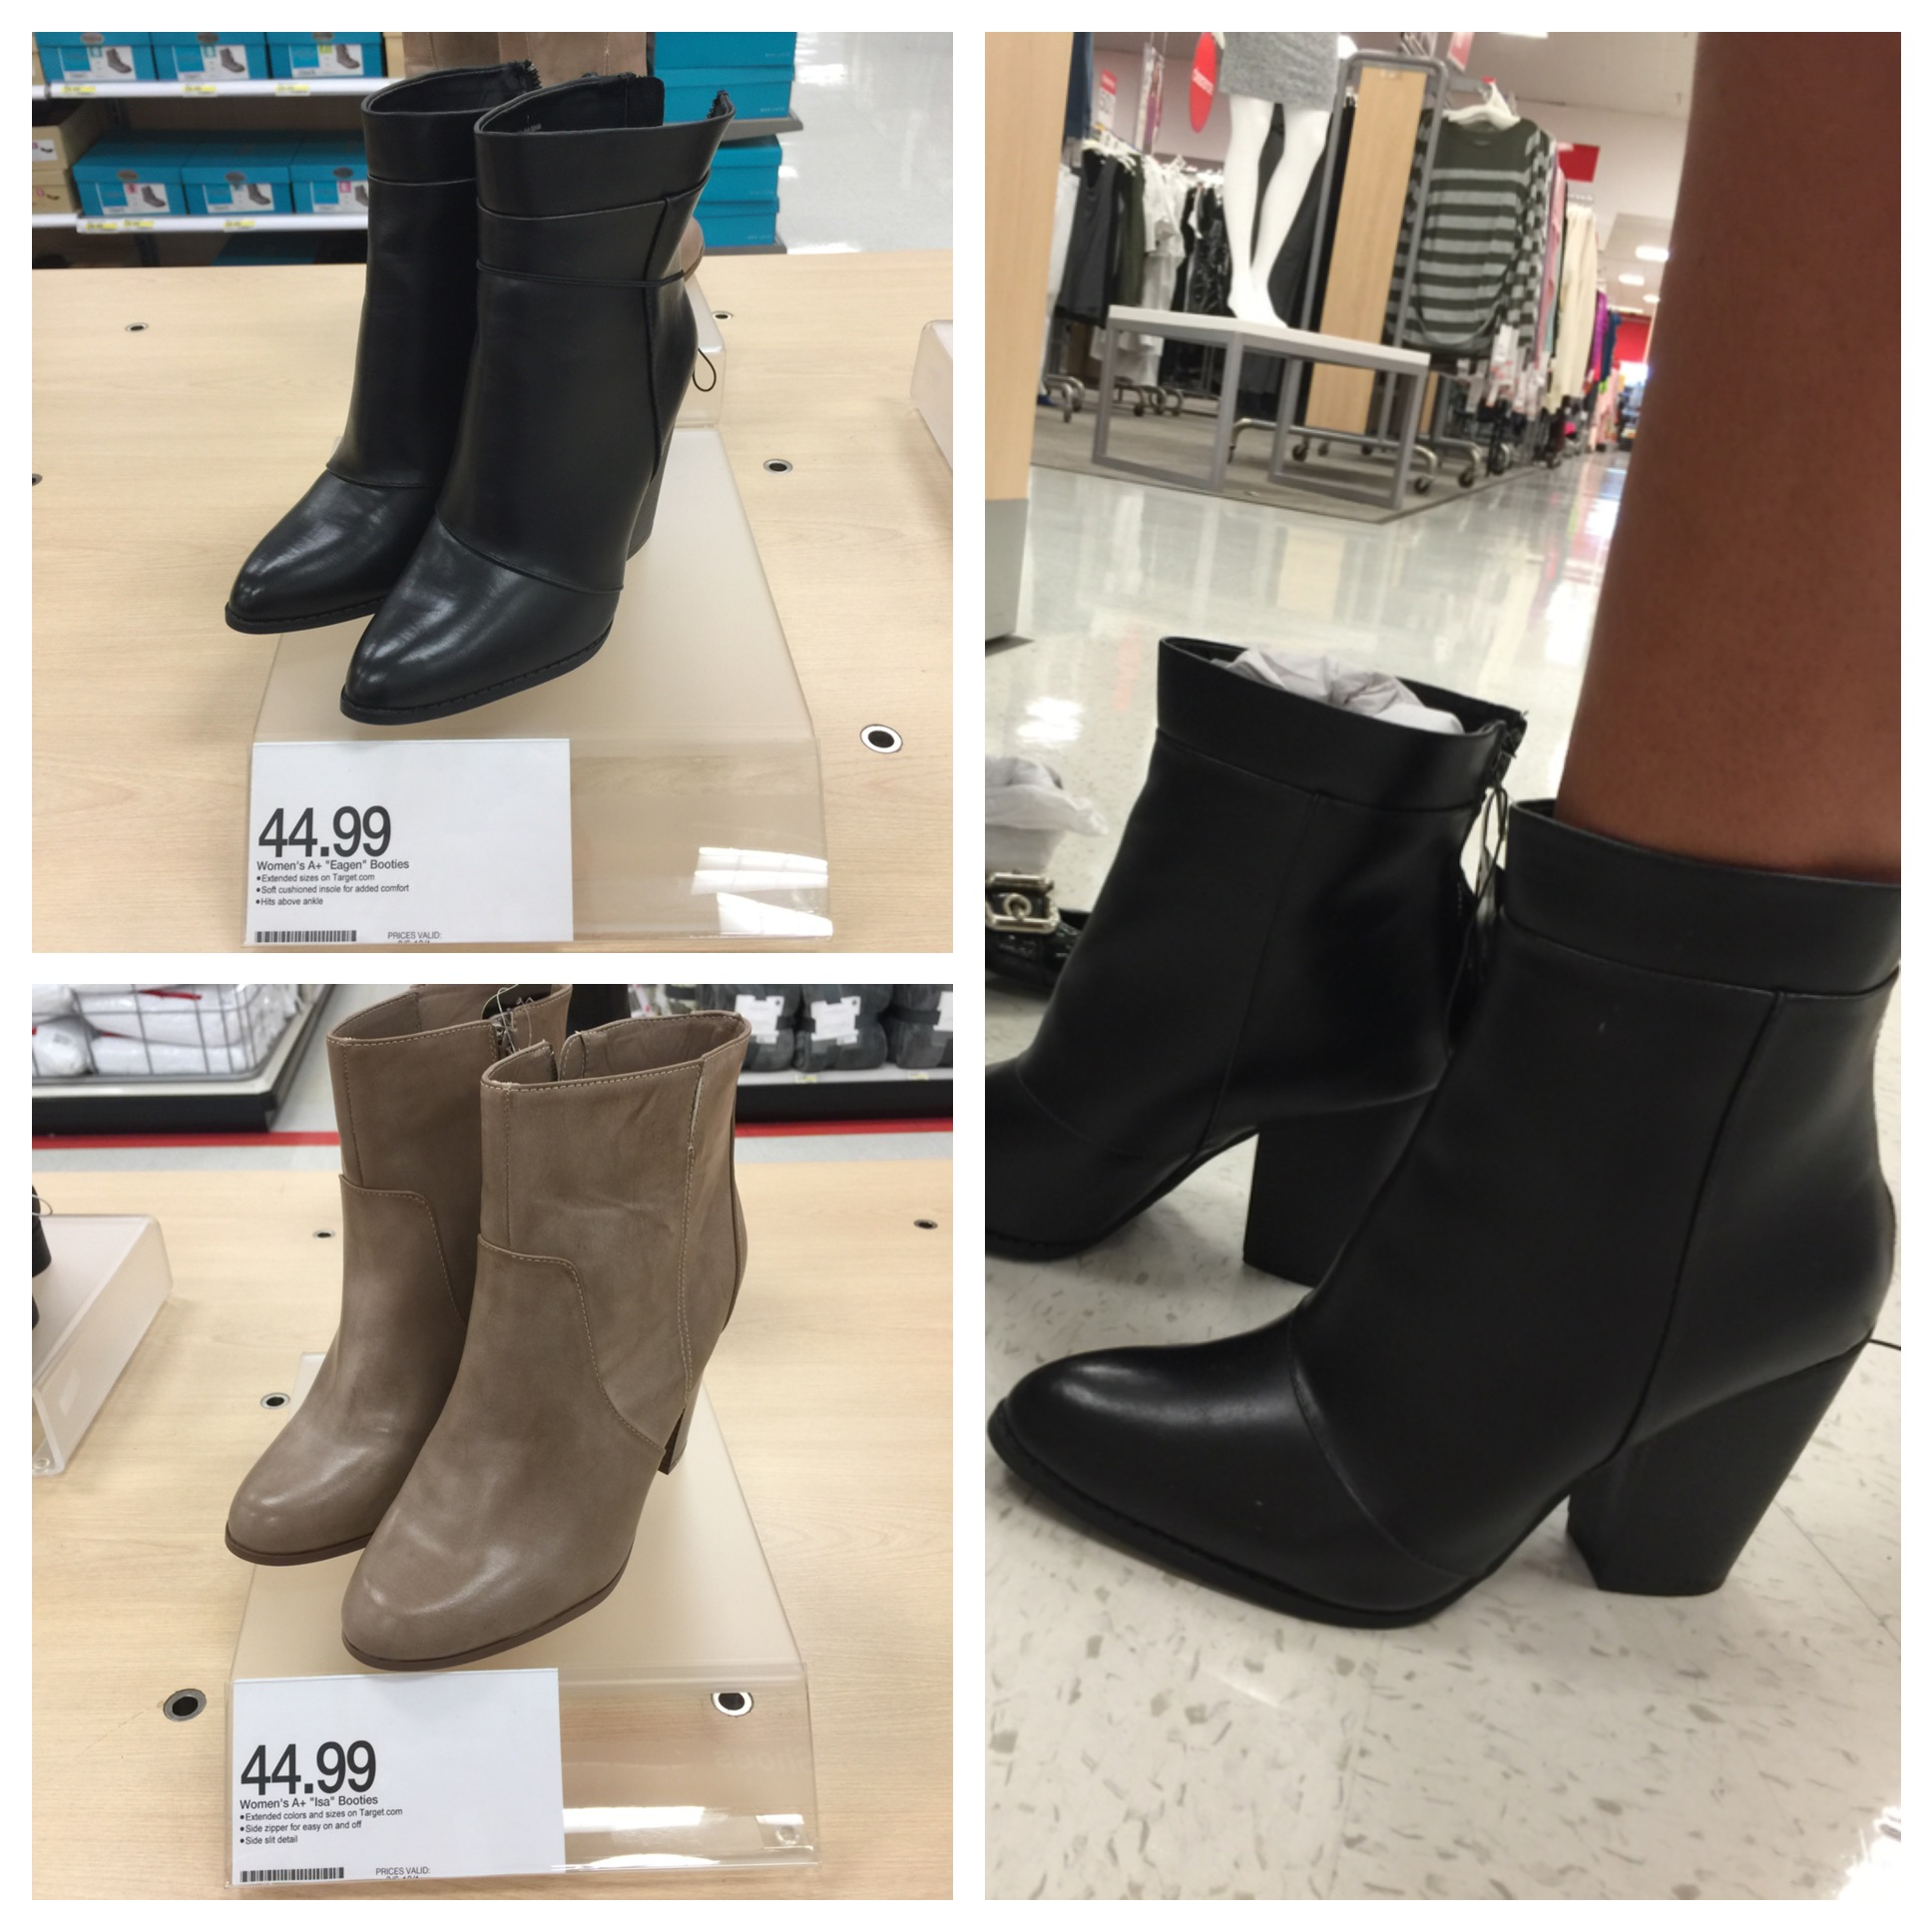 Fingerless gloves at target - For Me I Like The Pointed Toe On The Eagen And Isa Bootie Above But If You Prefer A Round Toe The Details On The Melody Bootie Below Are Spot